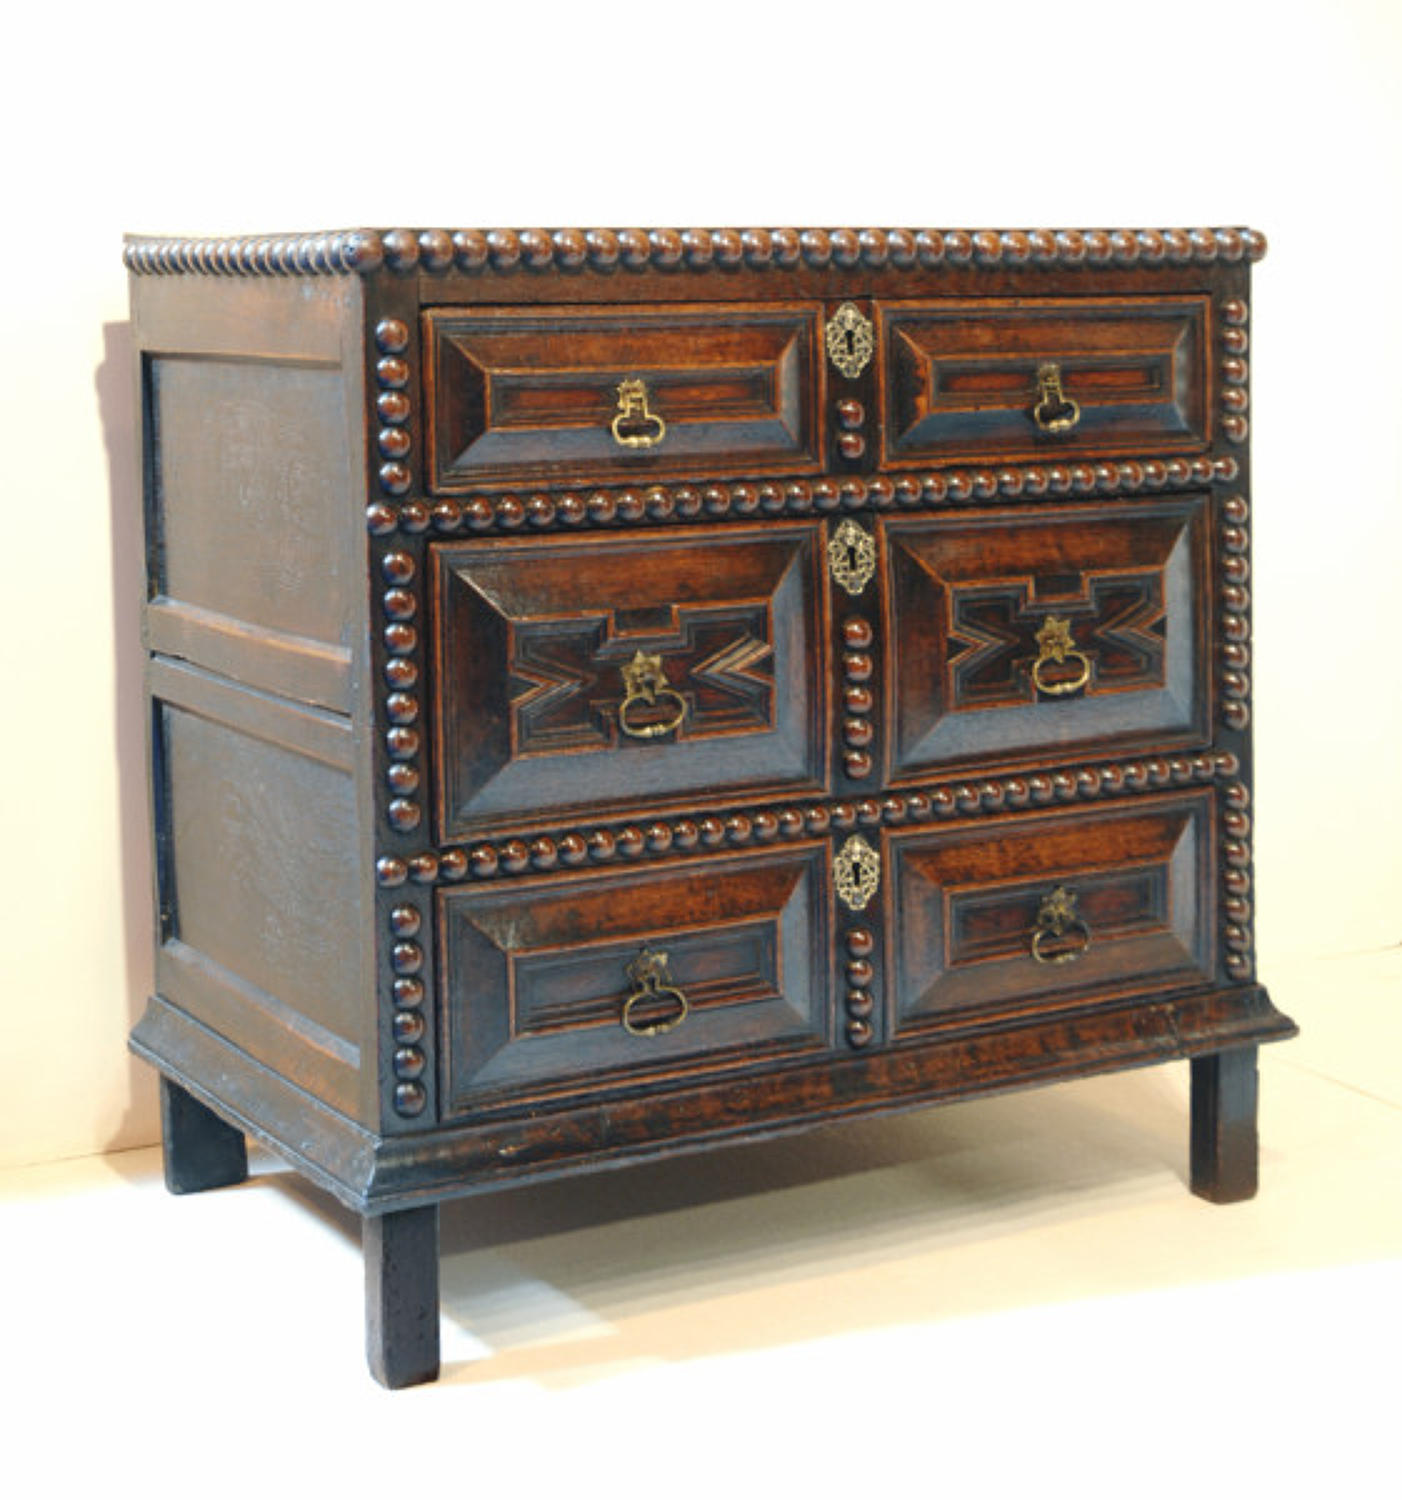 17thc Oak Chest of Drawers which splits into two parts. English C1660